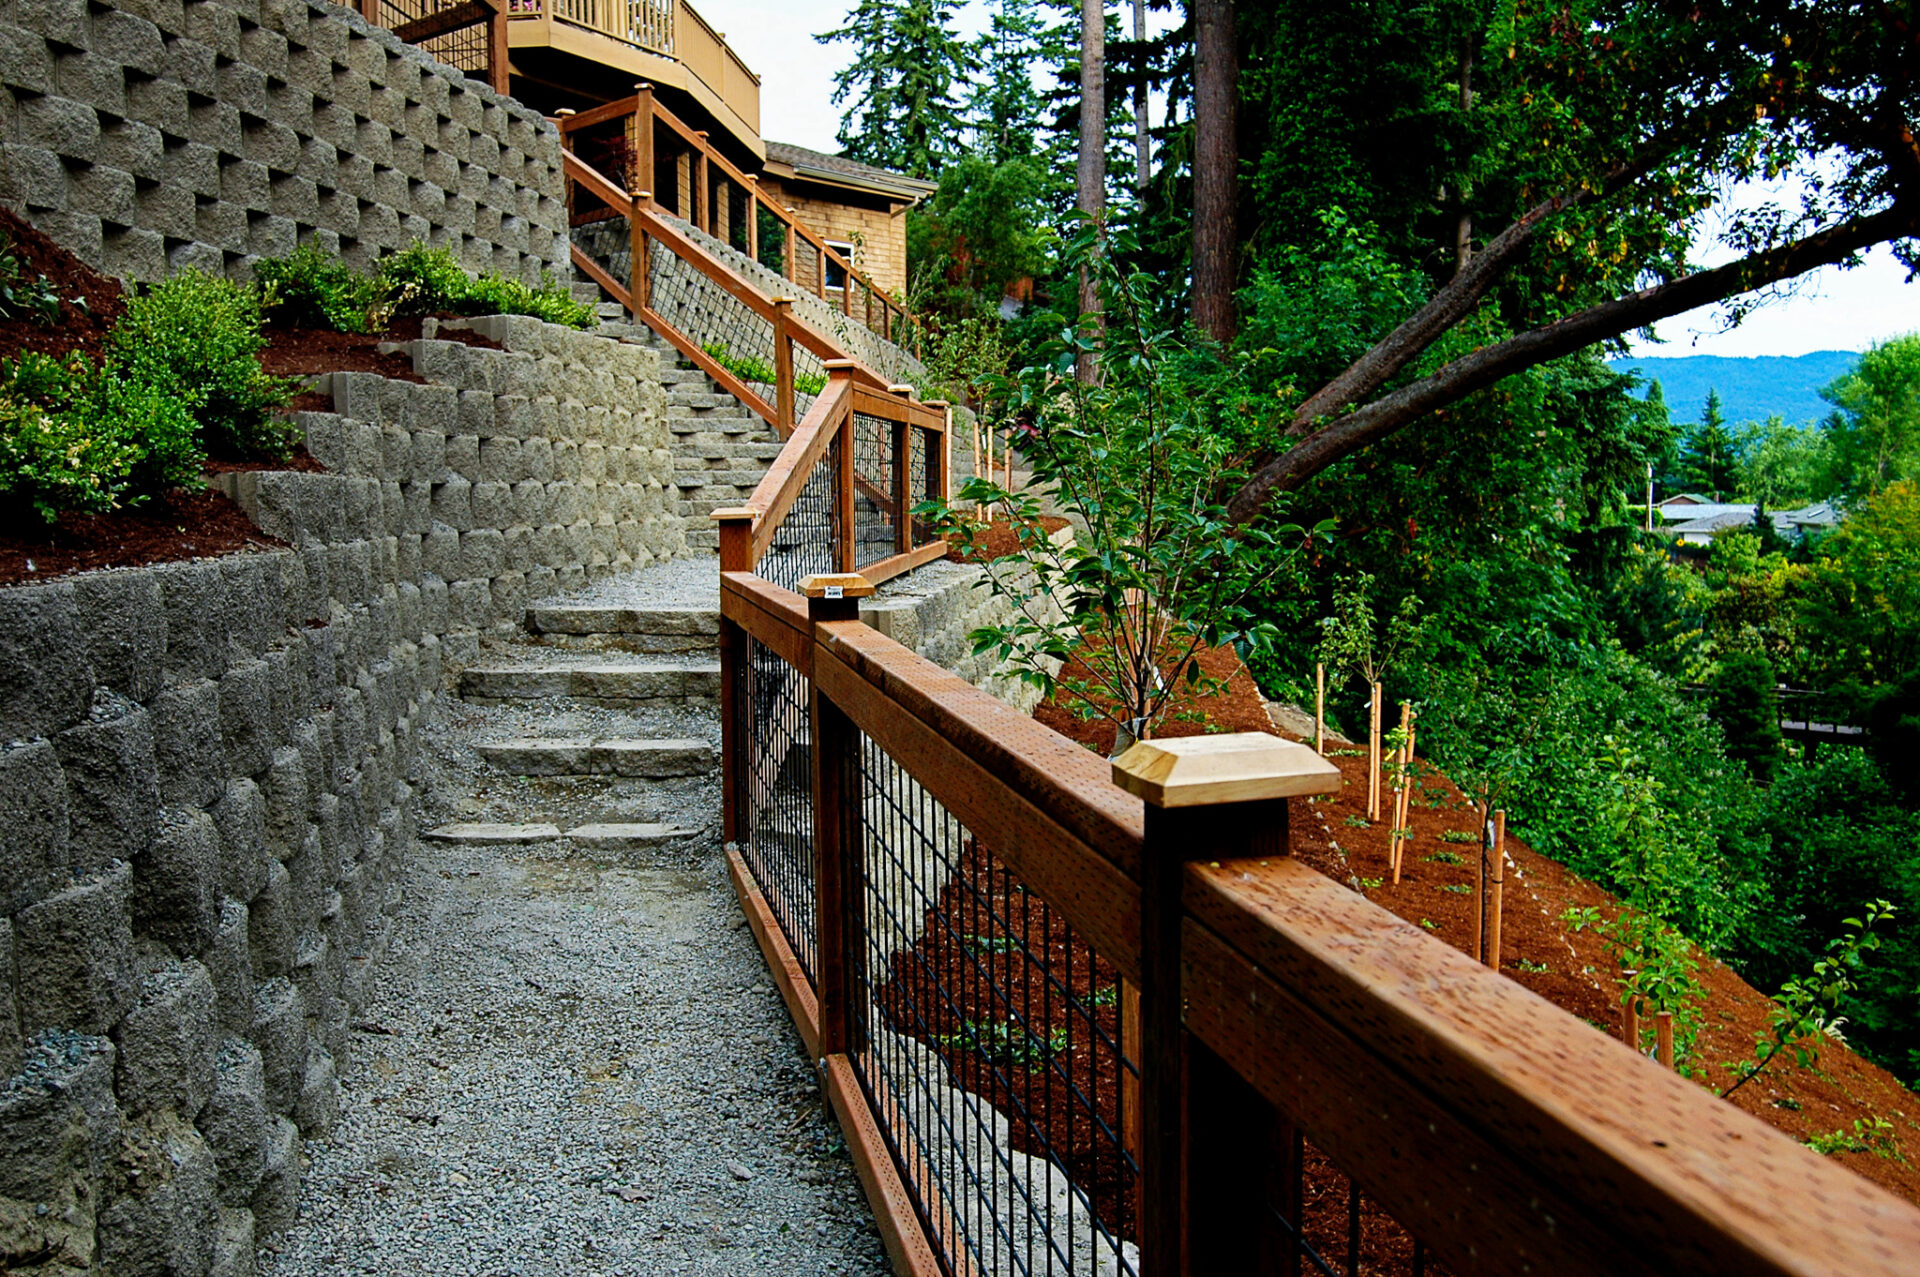 A photo of retaining walls and stairs with a fence leading uphill.